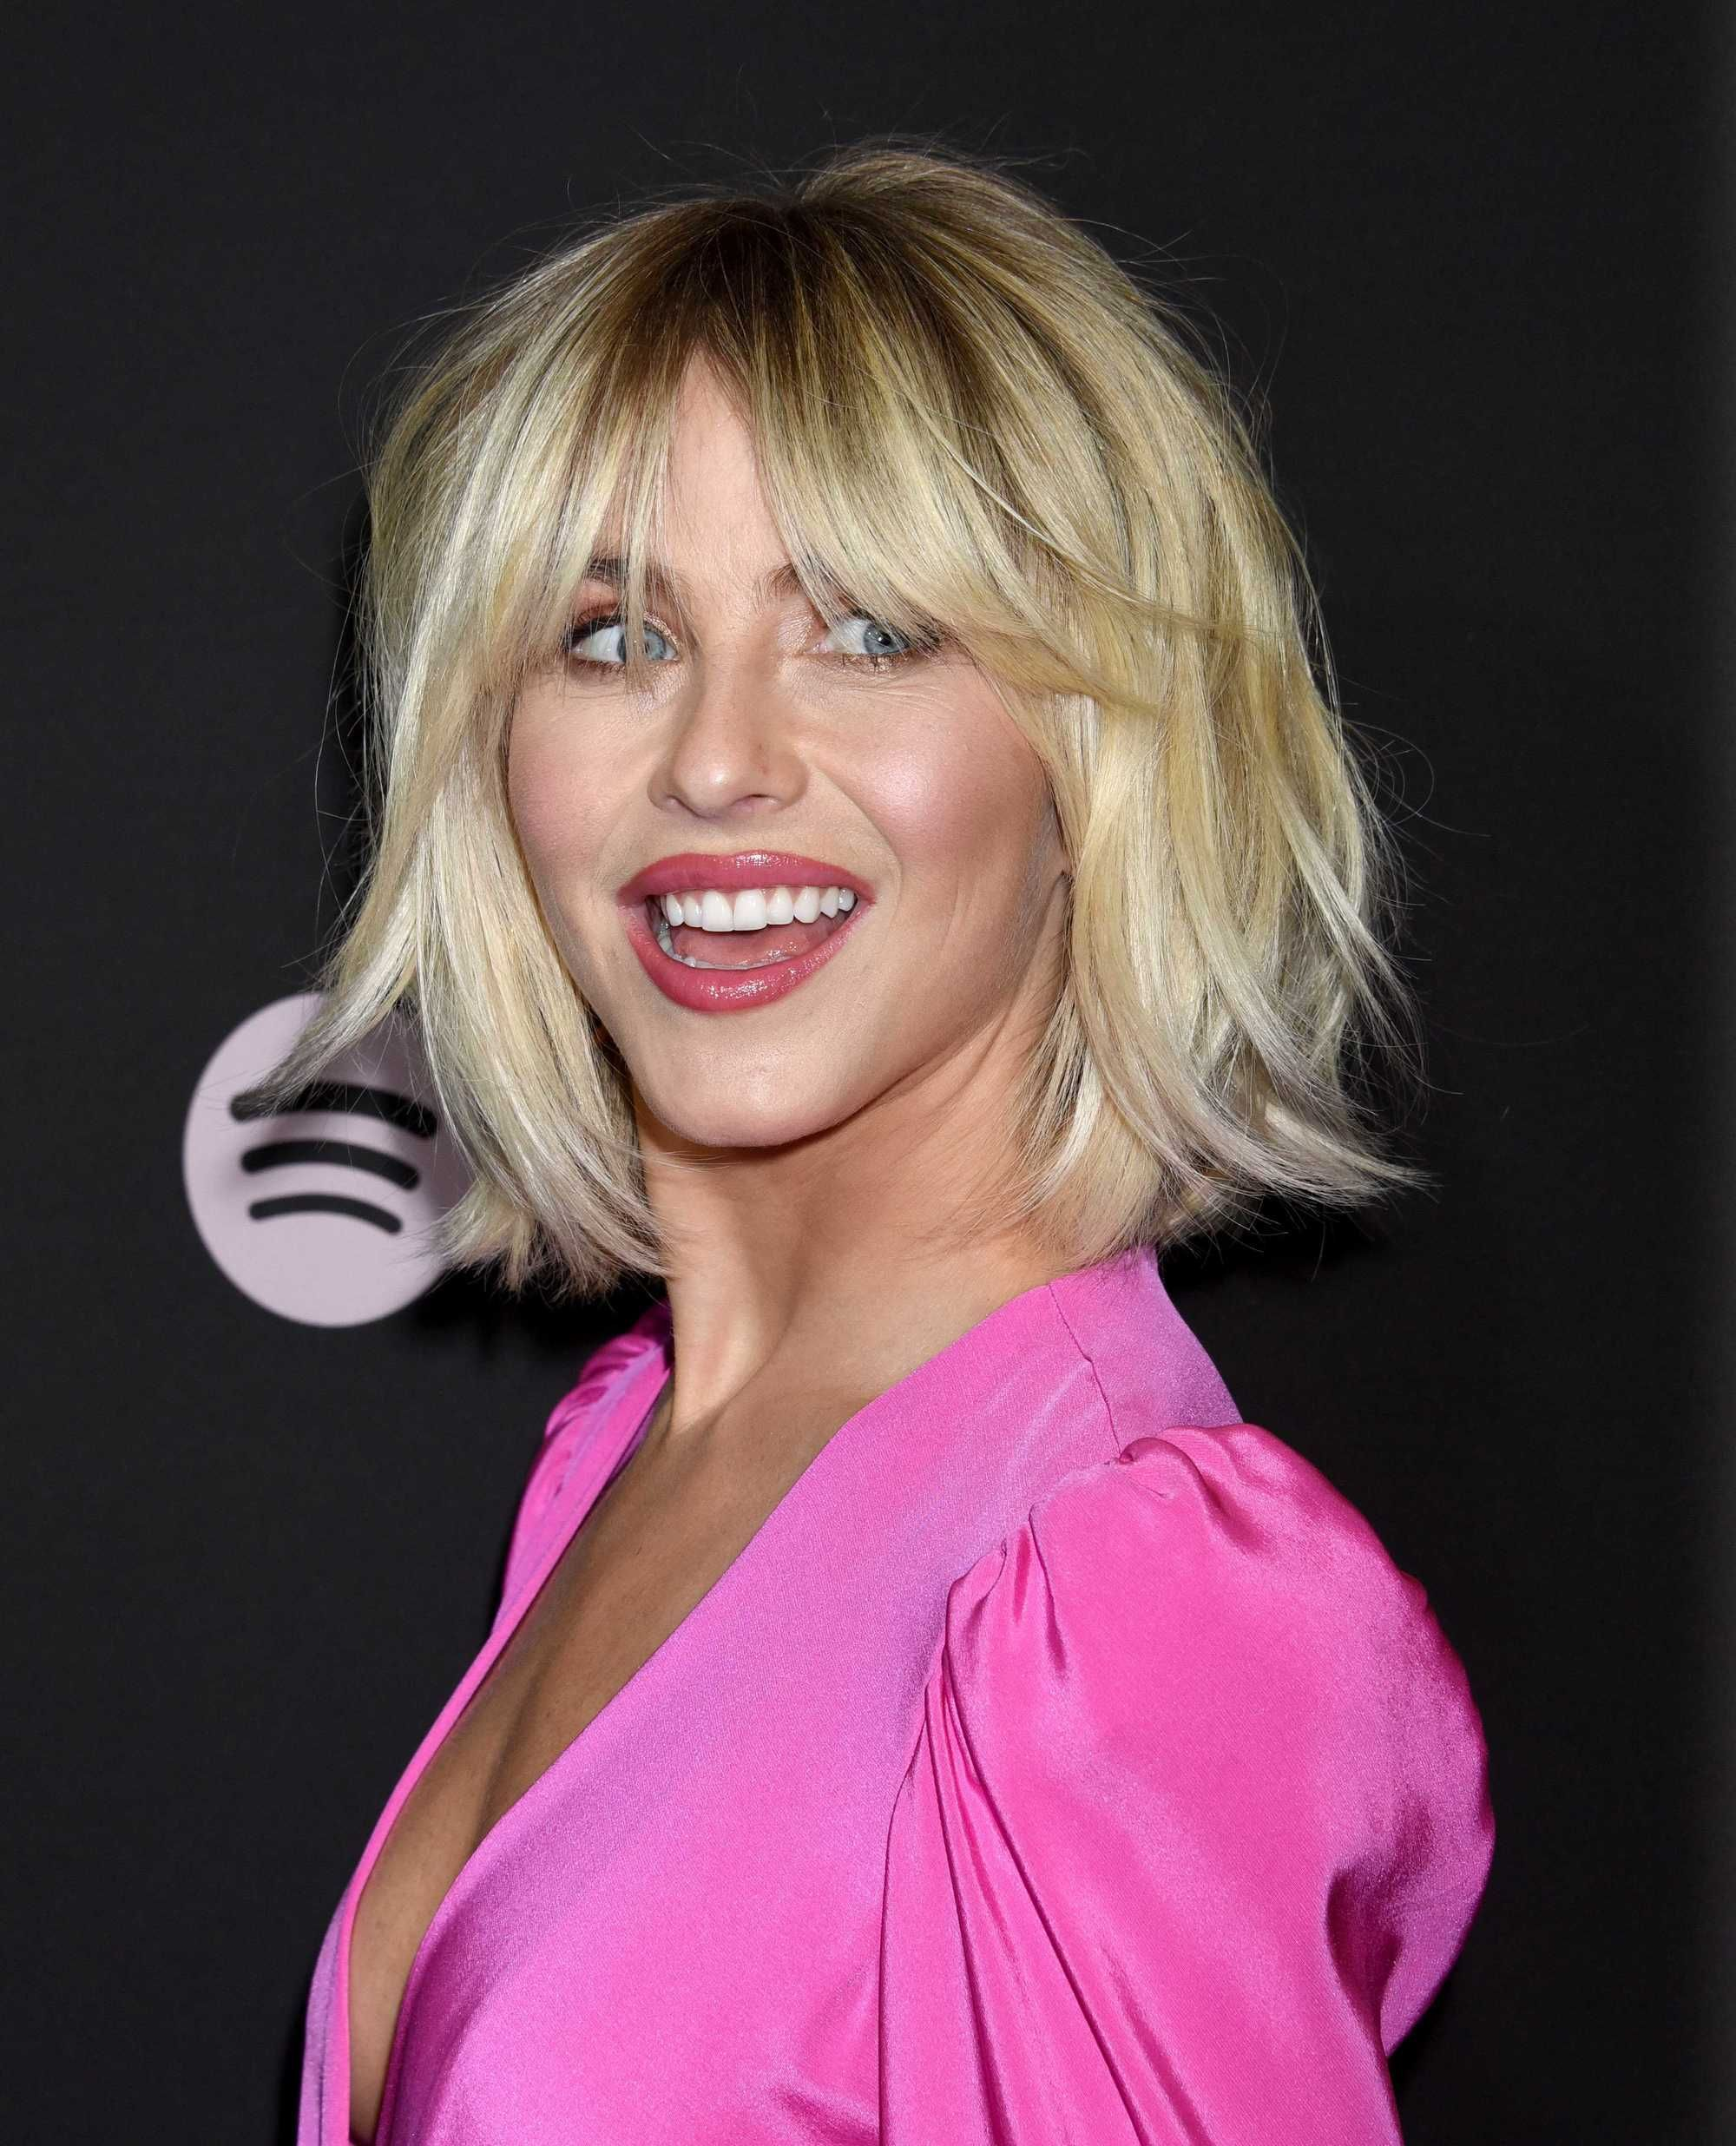 Ready to join the short hair crew? From trendy French girl-inspired styles to la...#crew #french #girlinspired #hair #join #ready #short #styles #trendy